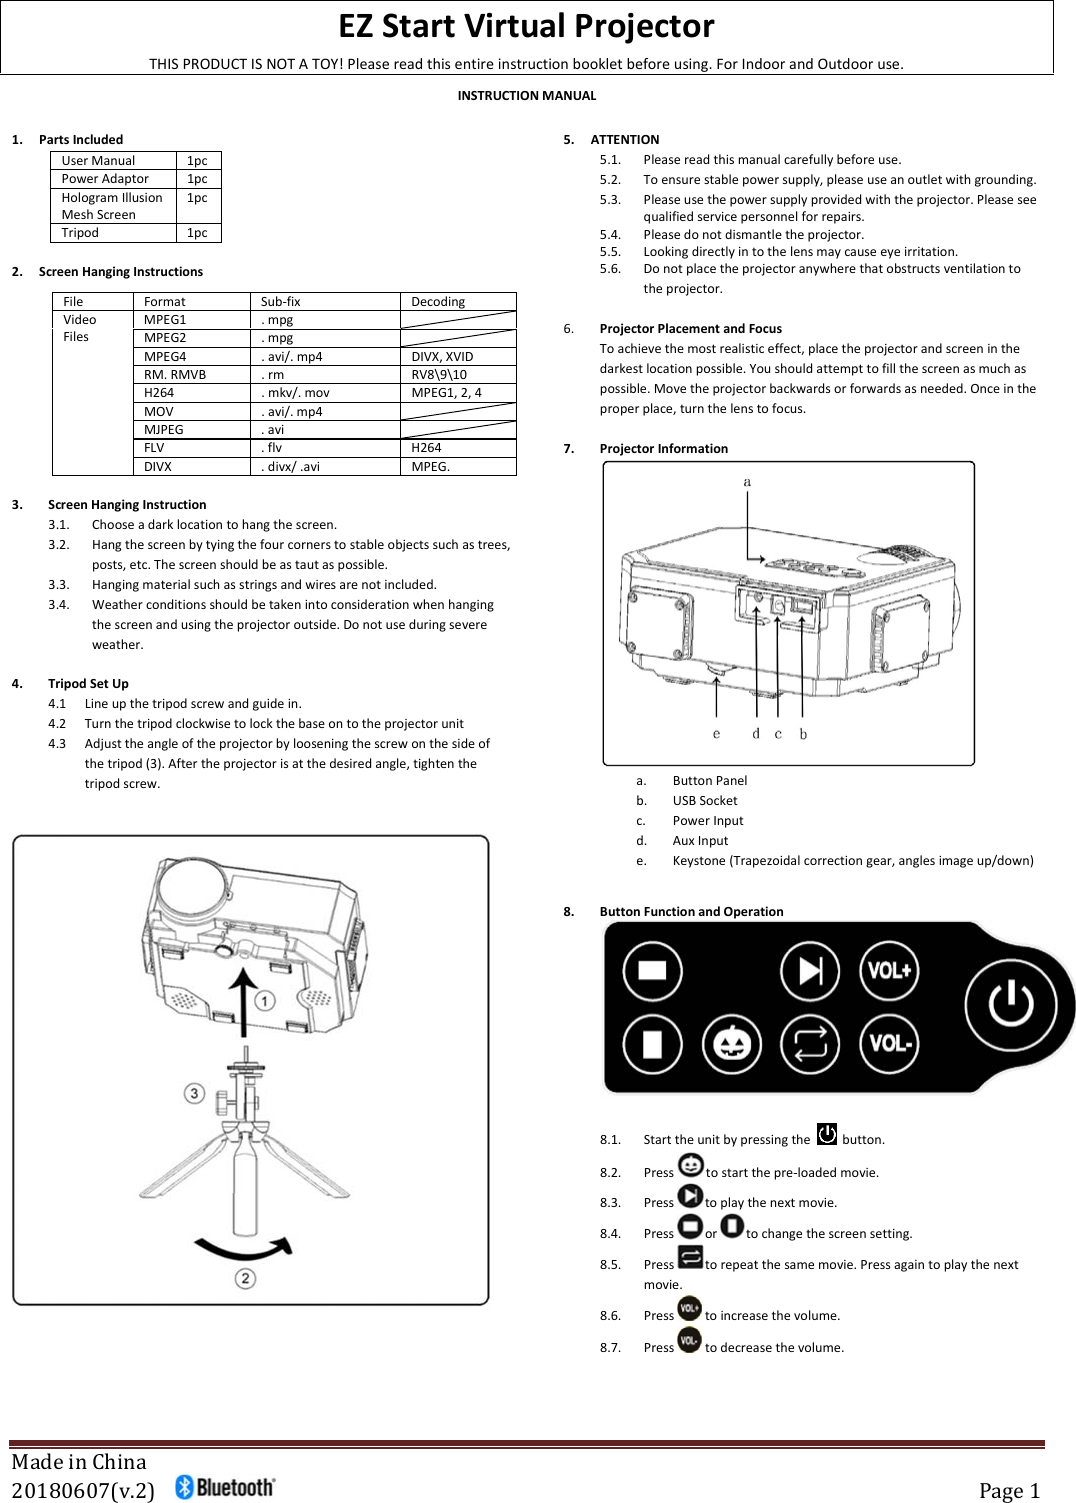 Ign Relocation Wire Elimination Help Needed Manual Guide